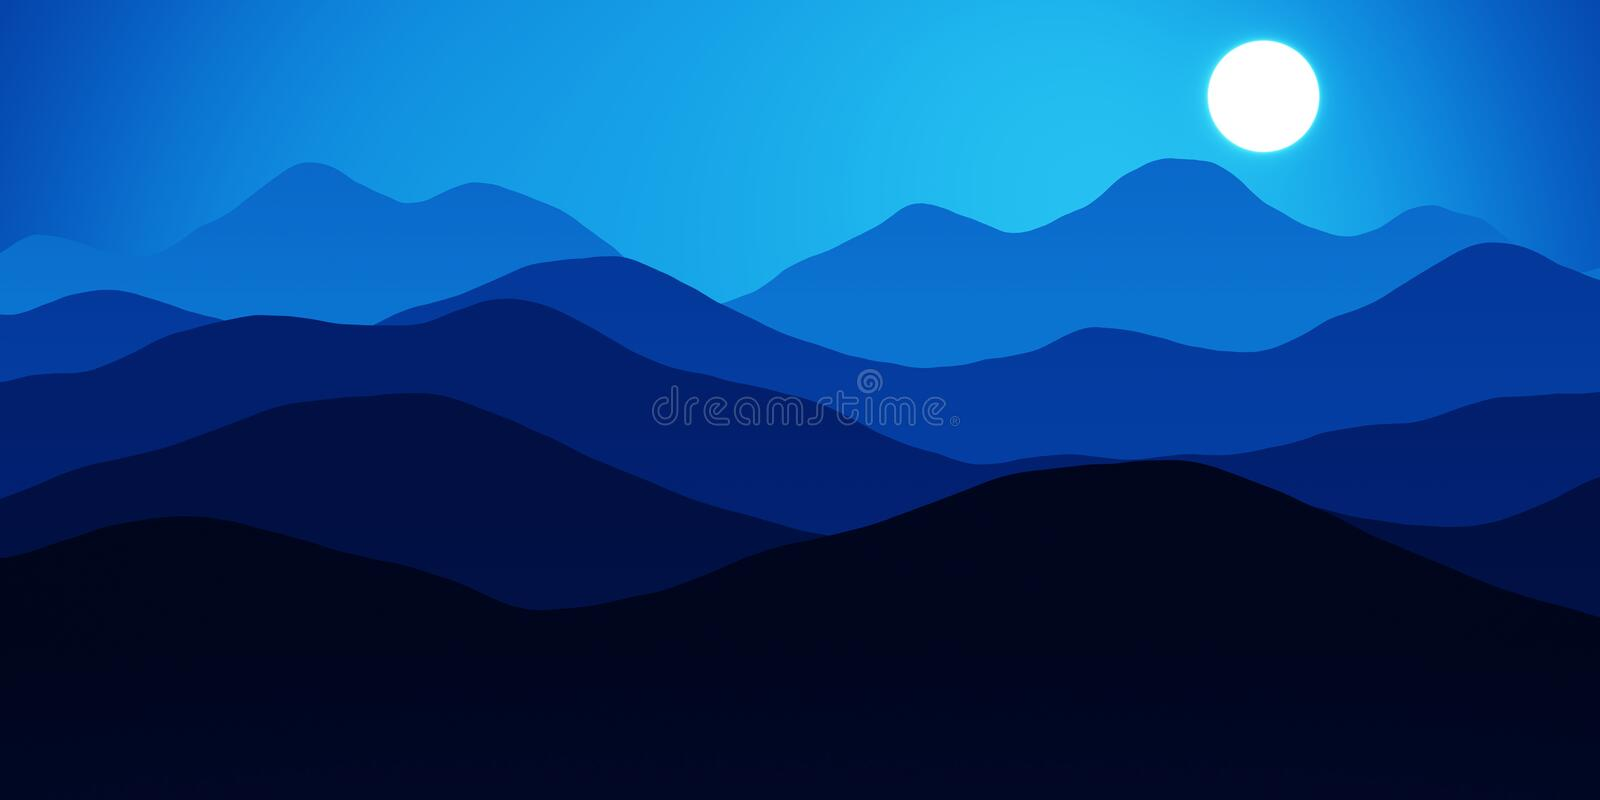 Simple landscape with mountains over sun. Panorama scale ratio 8:4 royalty free illustration